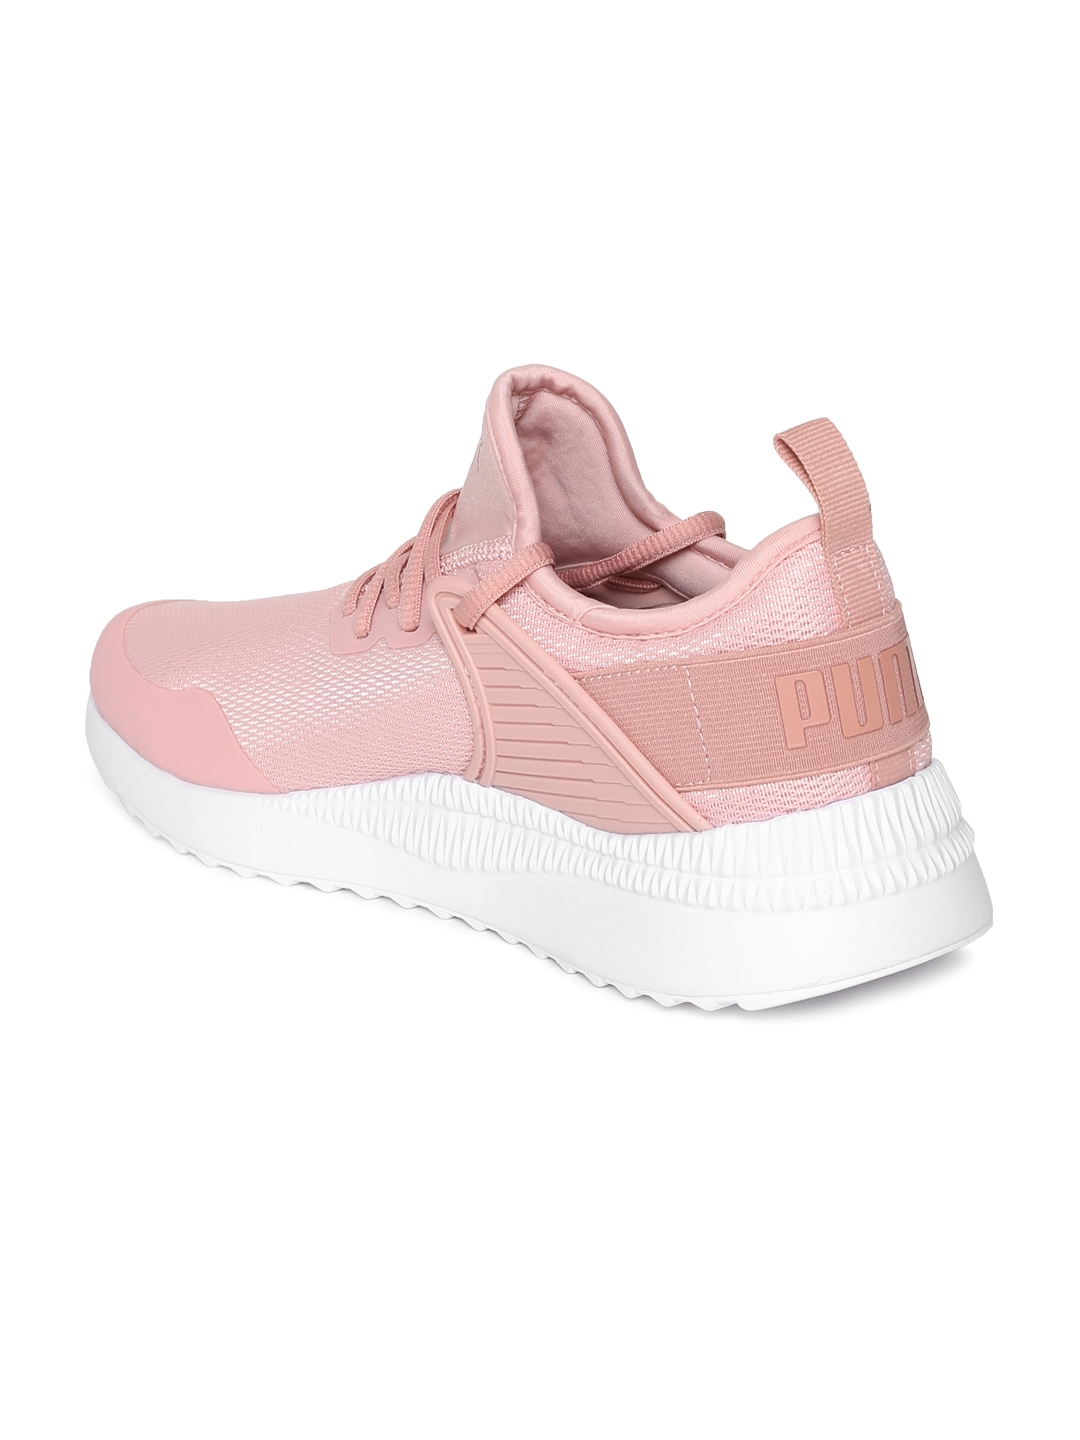 Buy Puma Women Pink Pacer Next Cage Sneakers - Casual Shoes for ... c52196b84